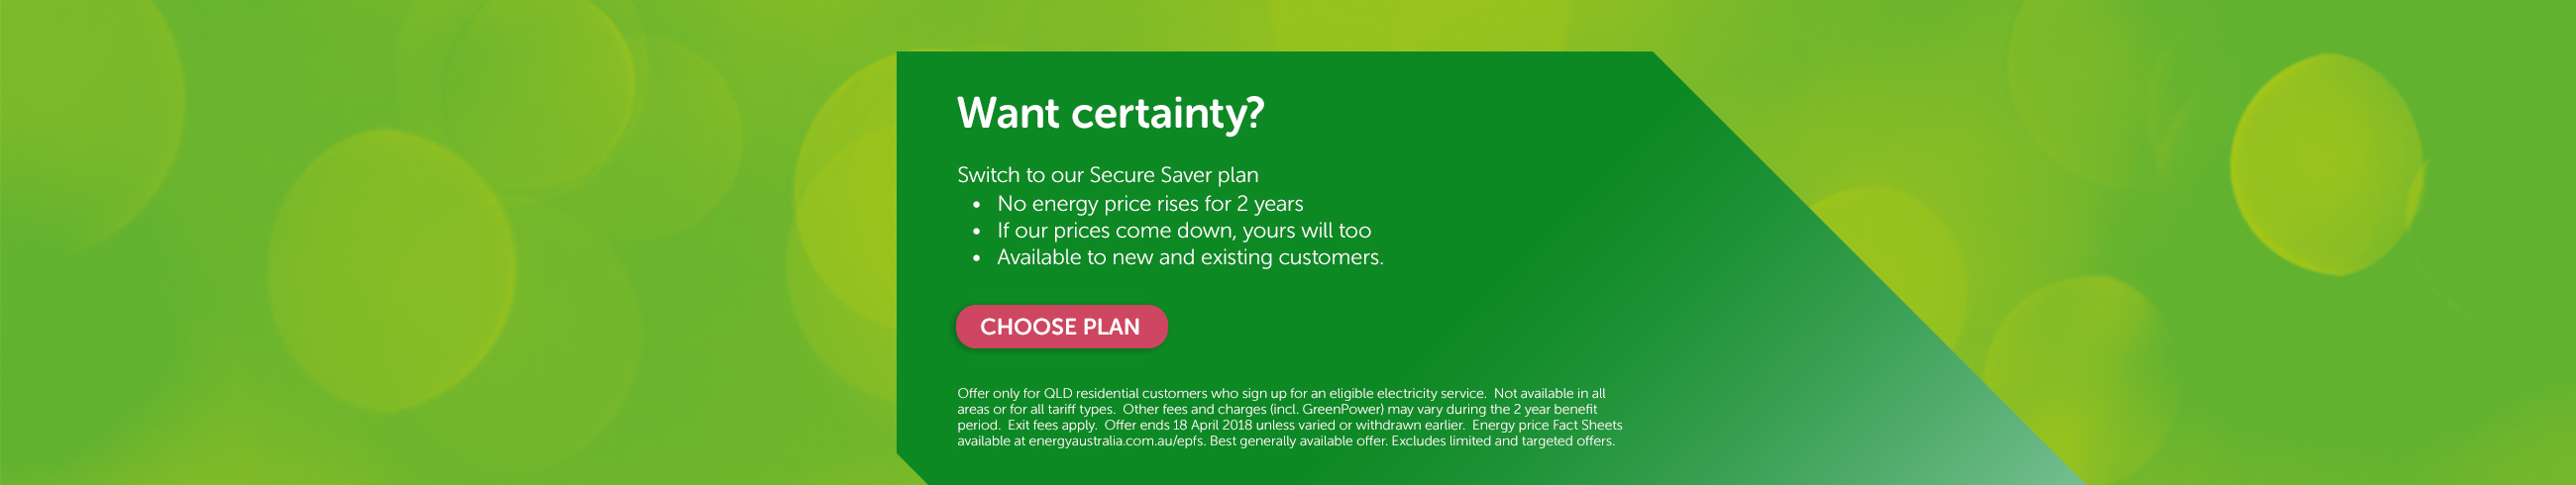 Switch to our Secure Saver plan